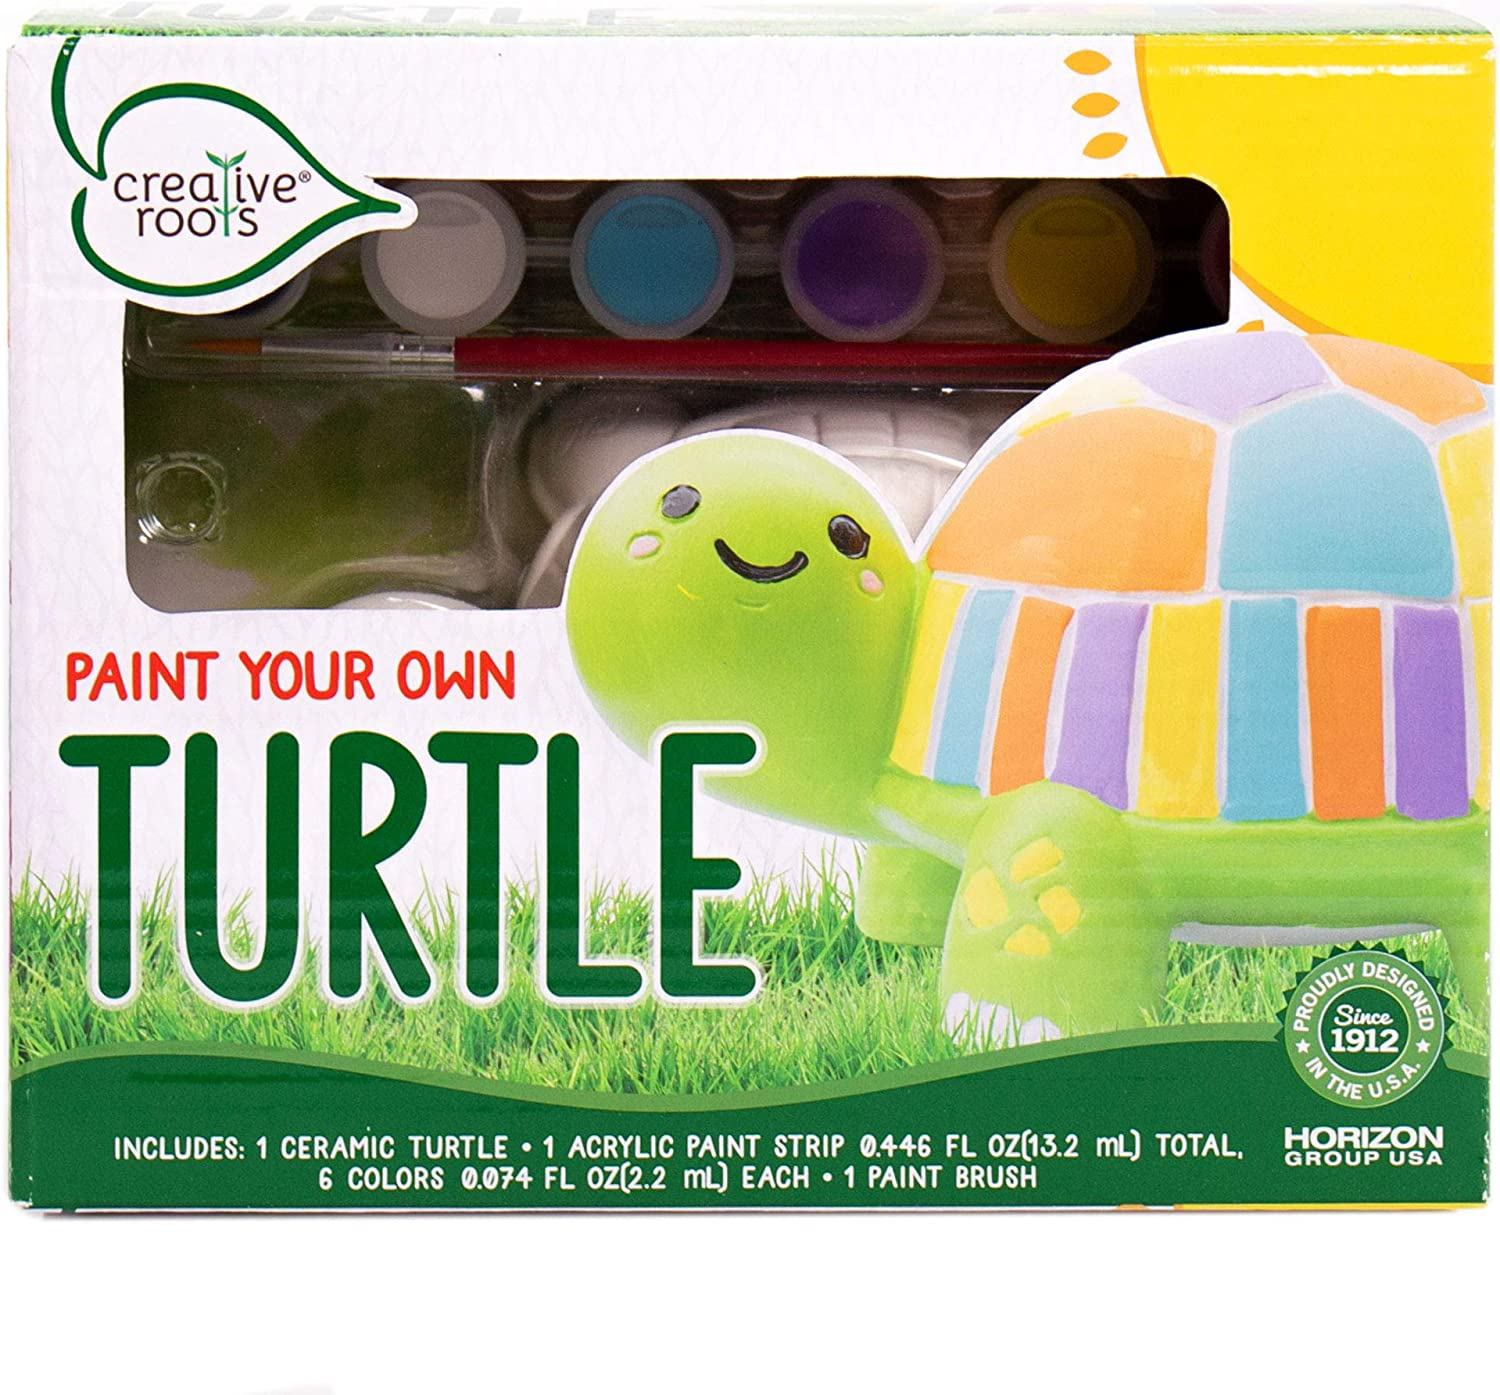 Purchase Creative Roots Now free shipping Paint Your Own Turtle Decor USA Group Horizon by